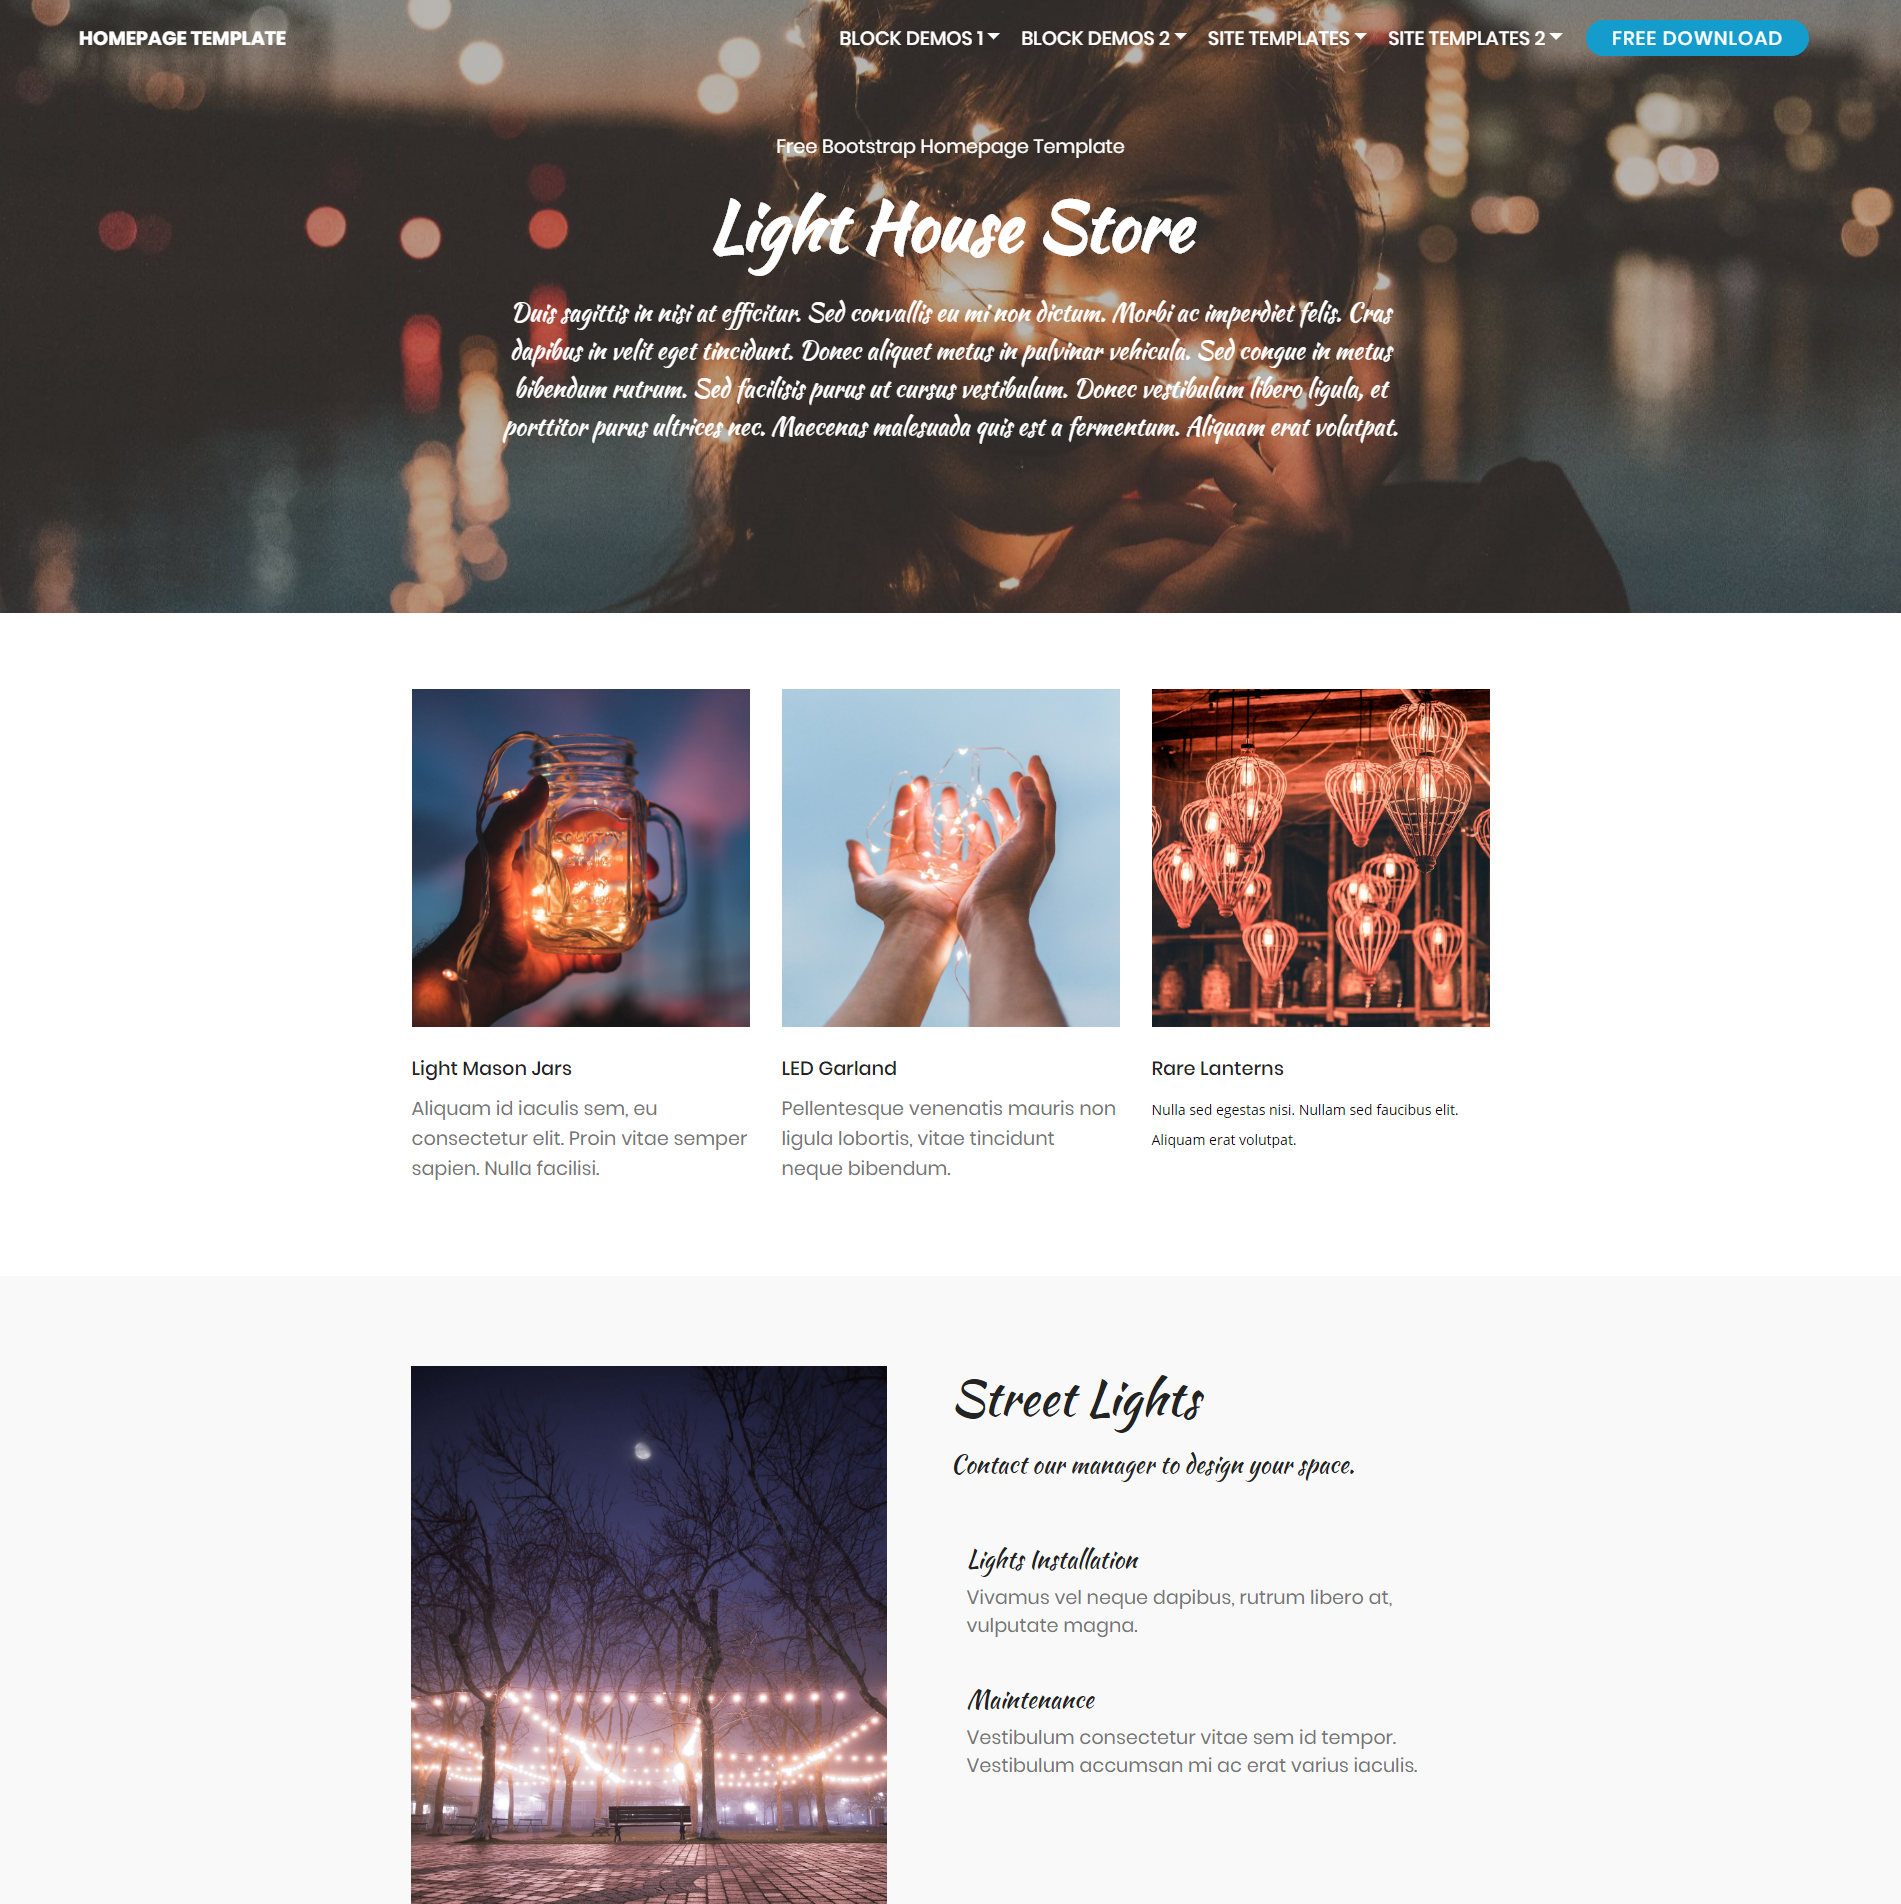 Responsive Bootstrap Homepage Templates